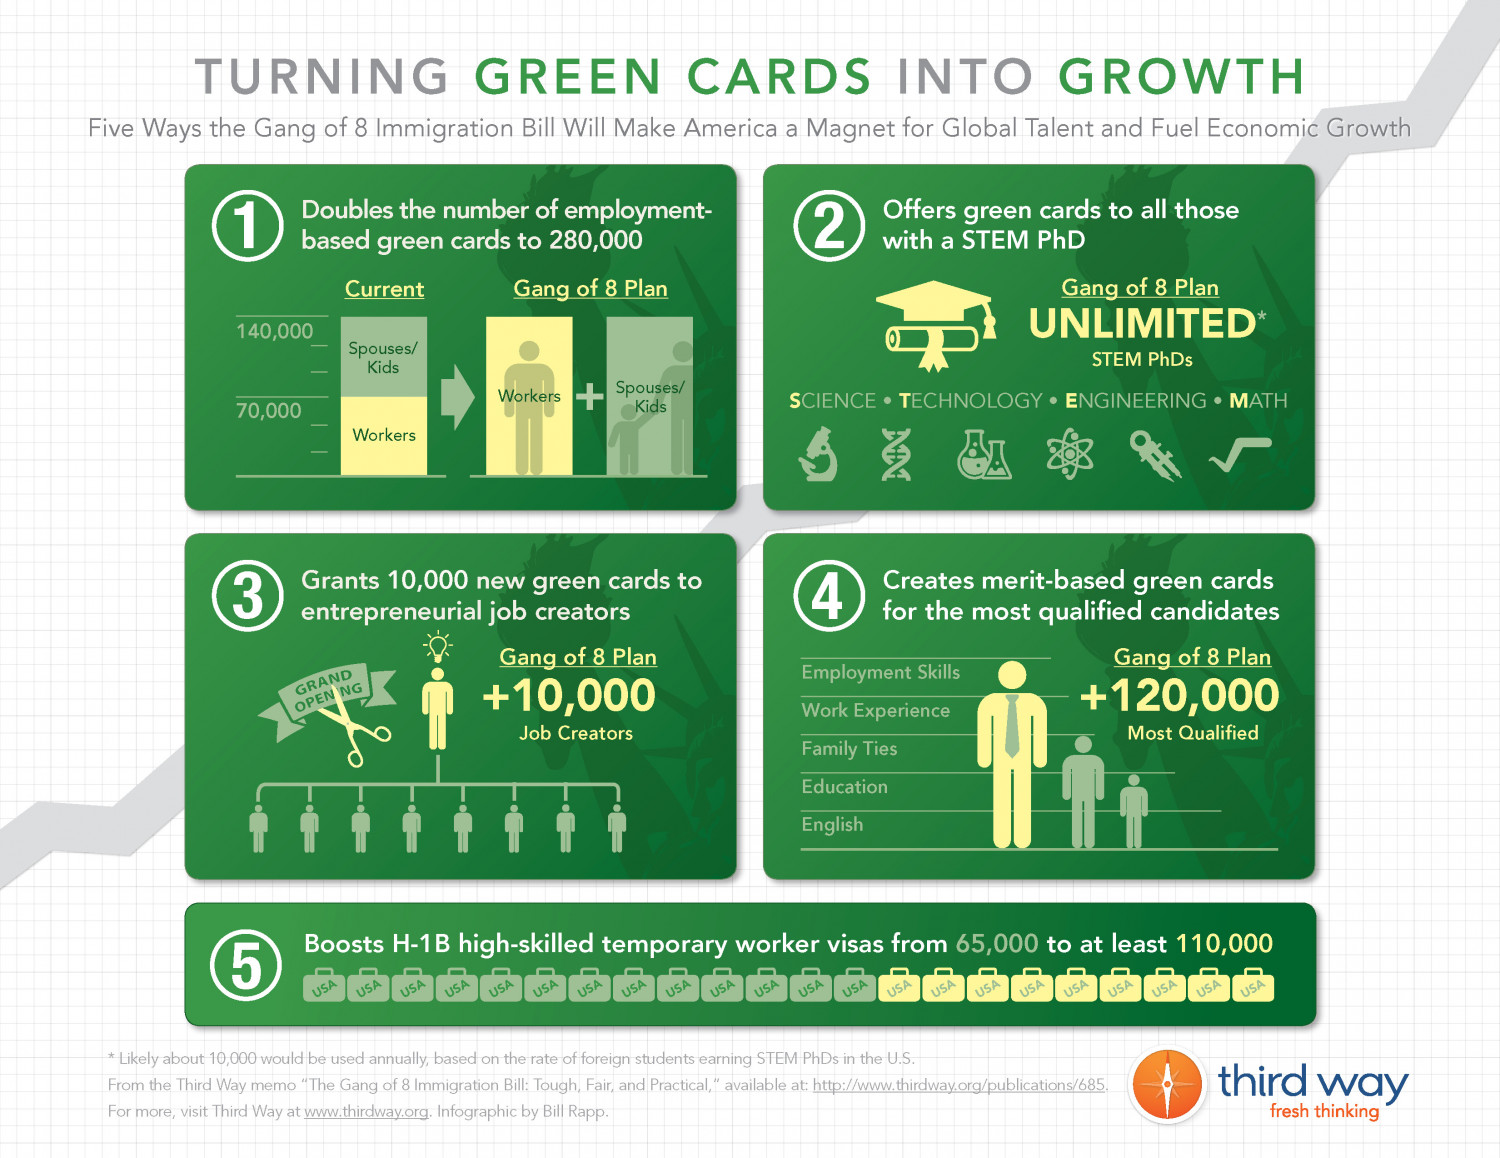 Turning Green Cards Into Growth Infographic